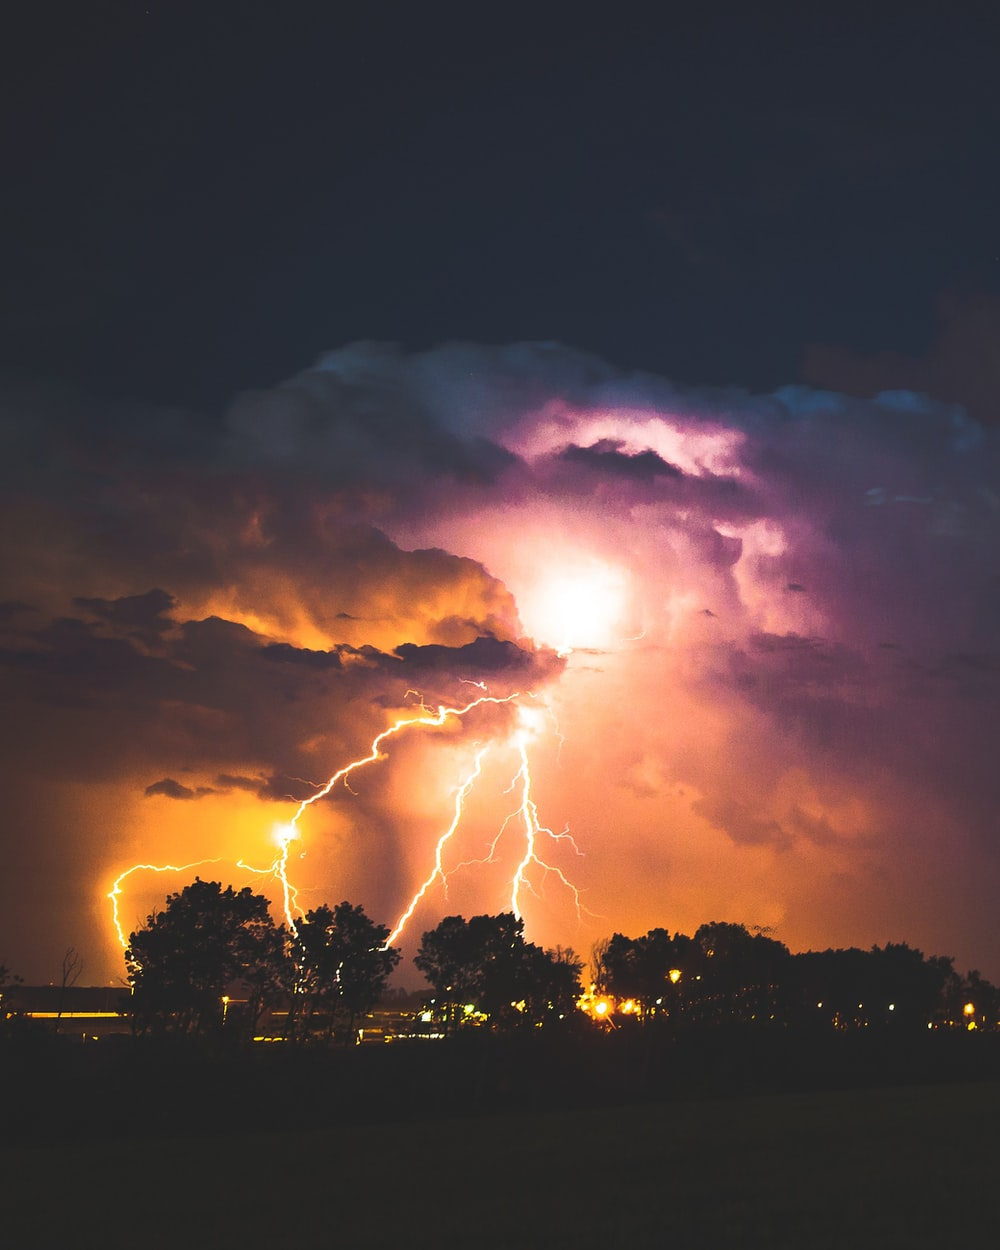 27 thunder pictures download free images on unsplash